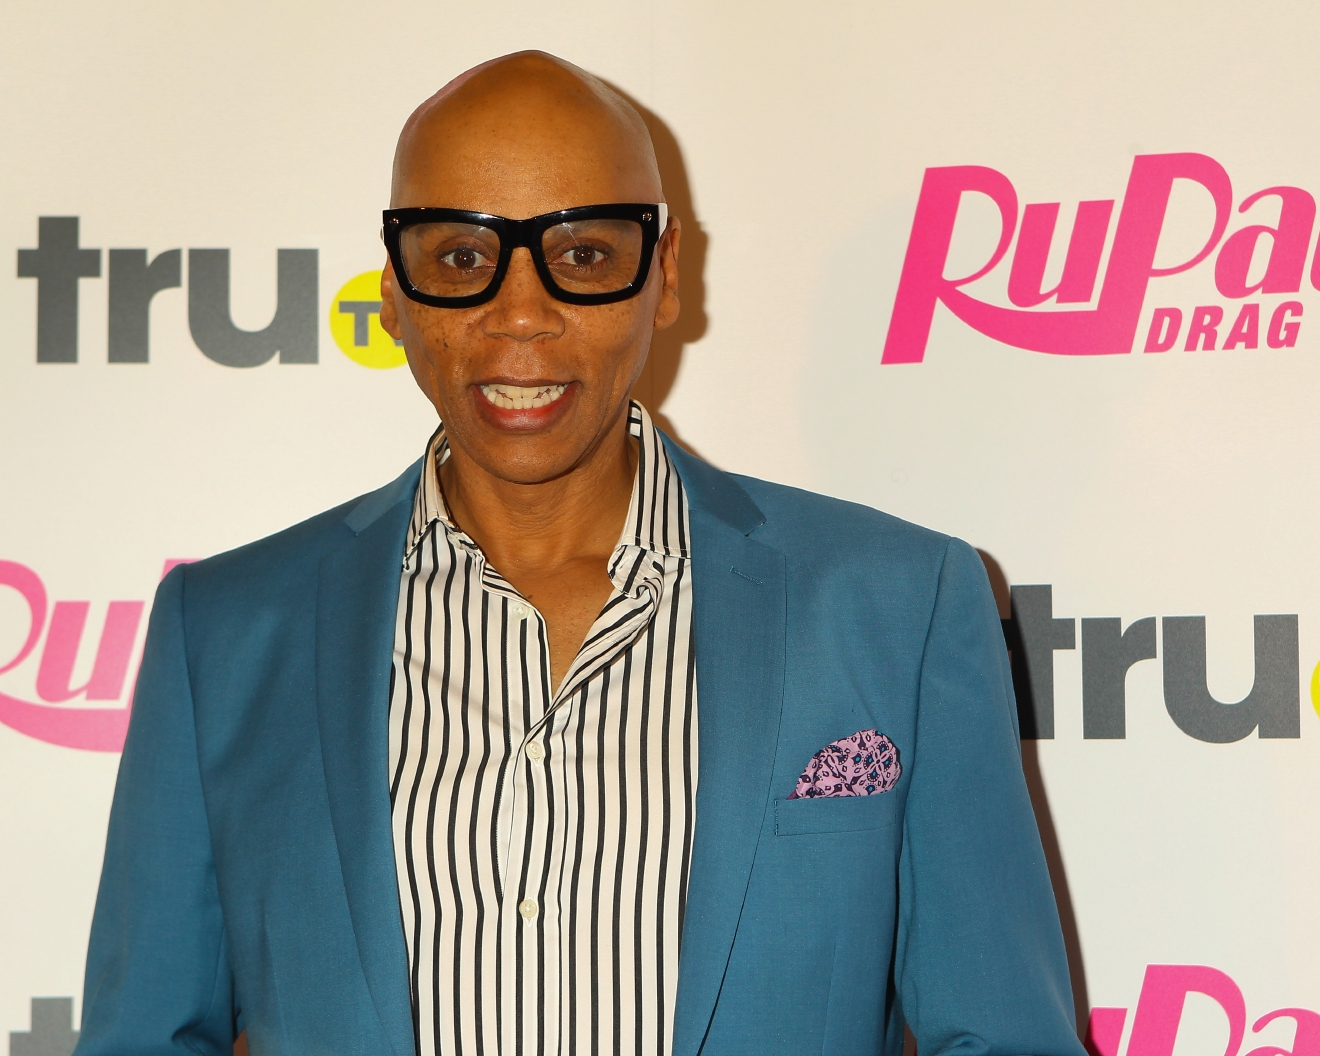 Arrivals for the launch of RuPaul's Drag Race  Featuring: RuPaul Where: London, United Kingdom When: 28 May 2015 Credit: WENN.com